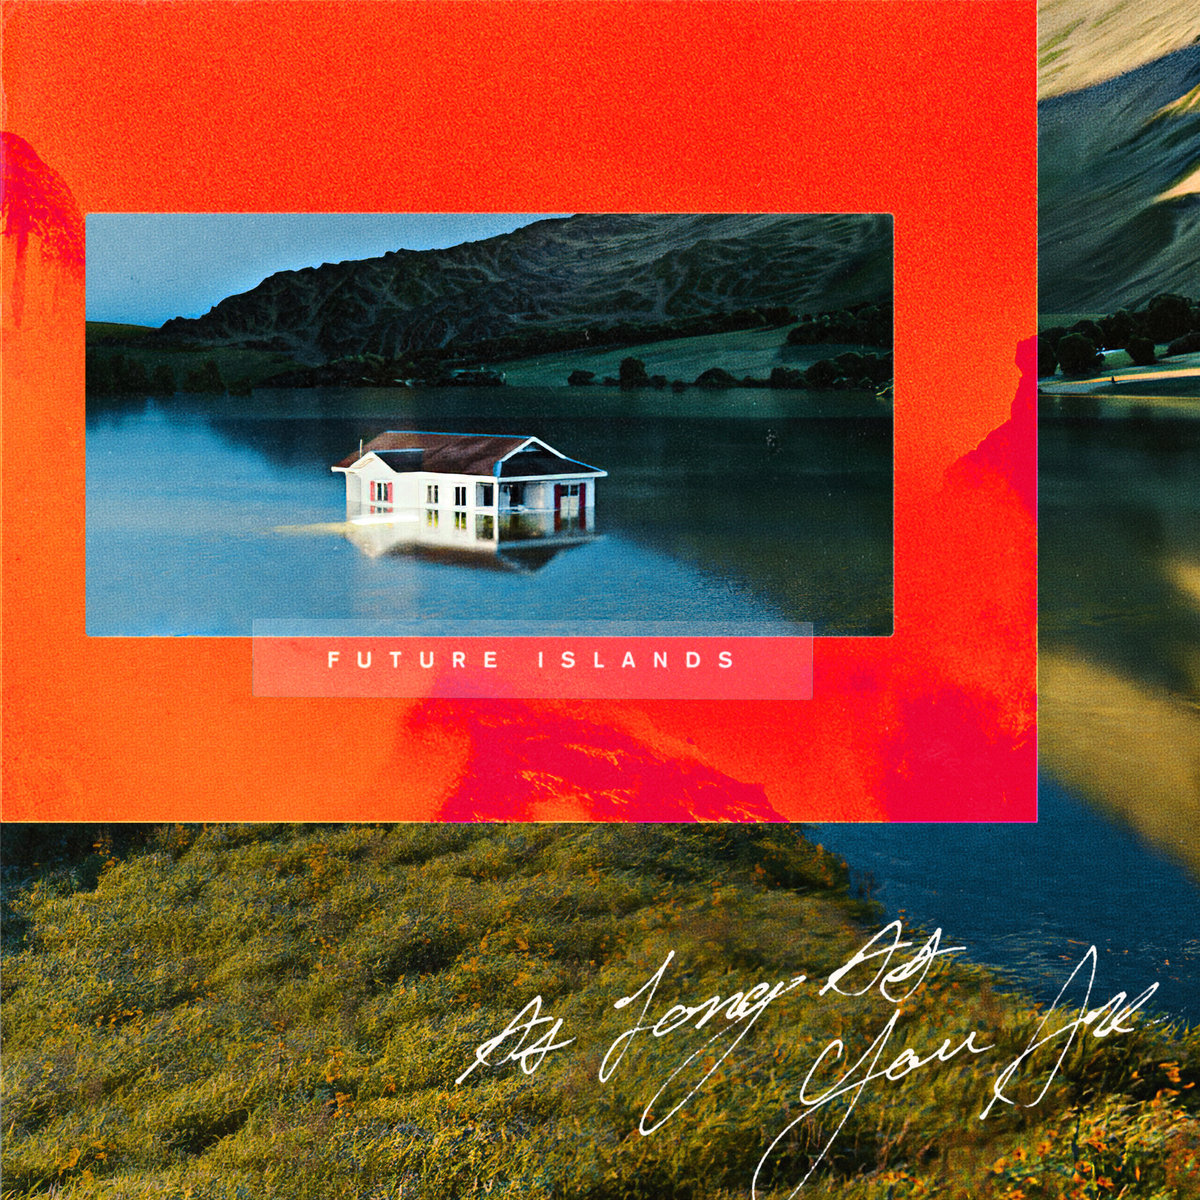 future-islands-as-long-as-you-are